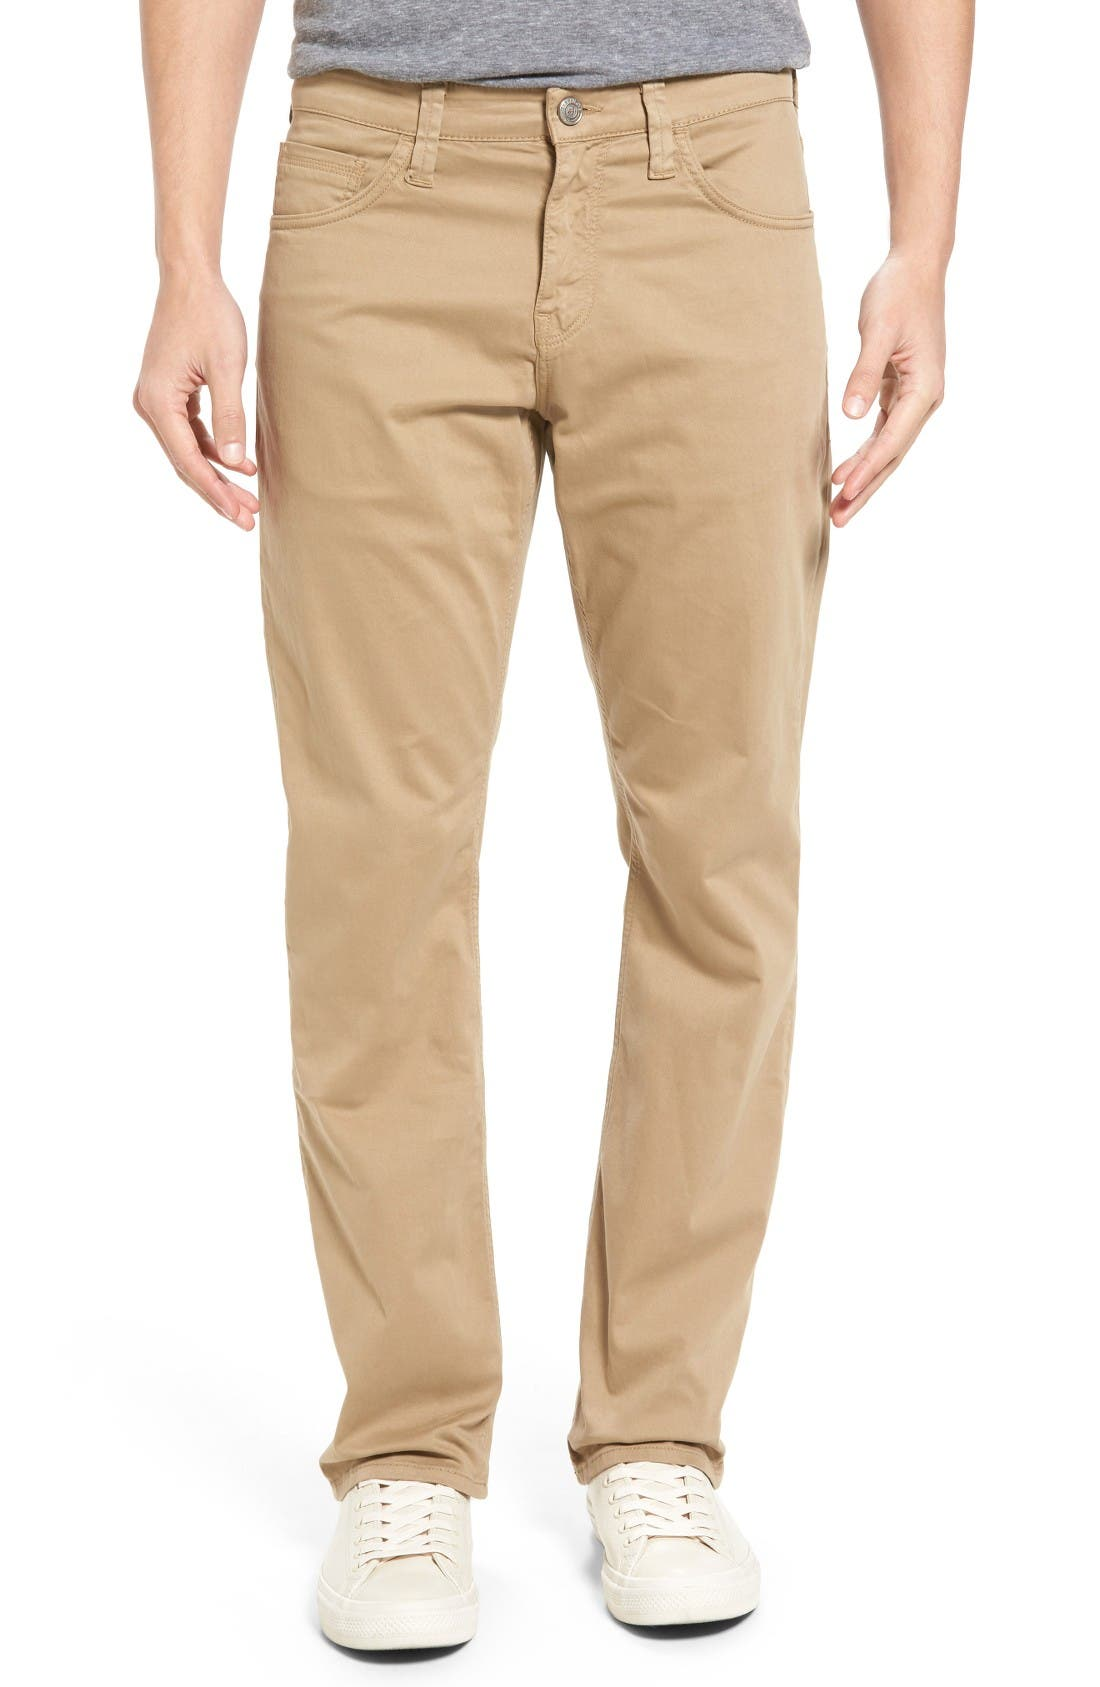 Matte Relaxed Fit Jeans,                         Main,                         color, British Khaki Twill